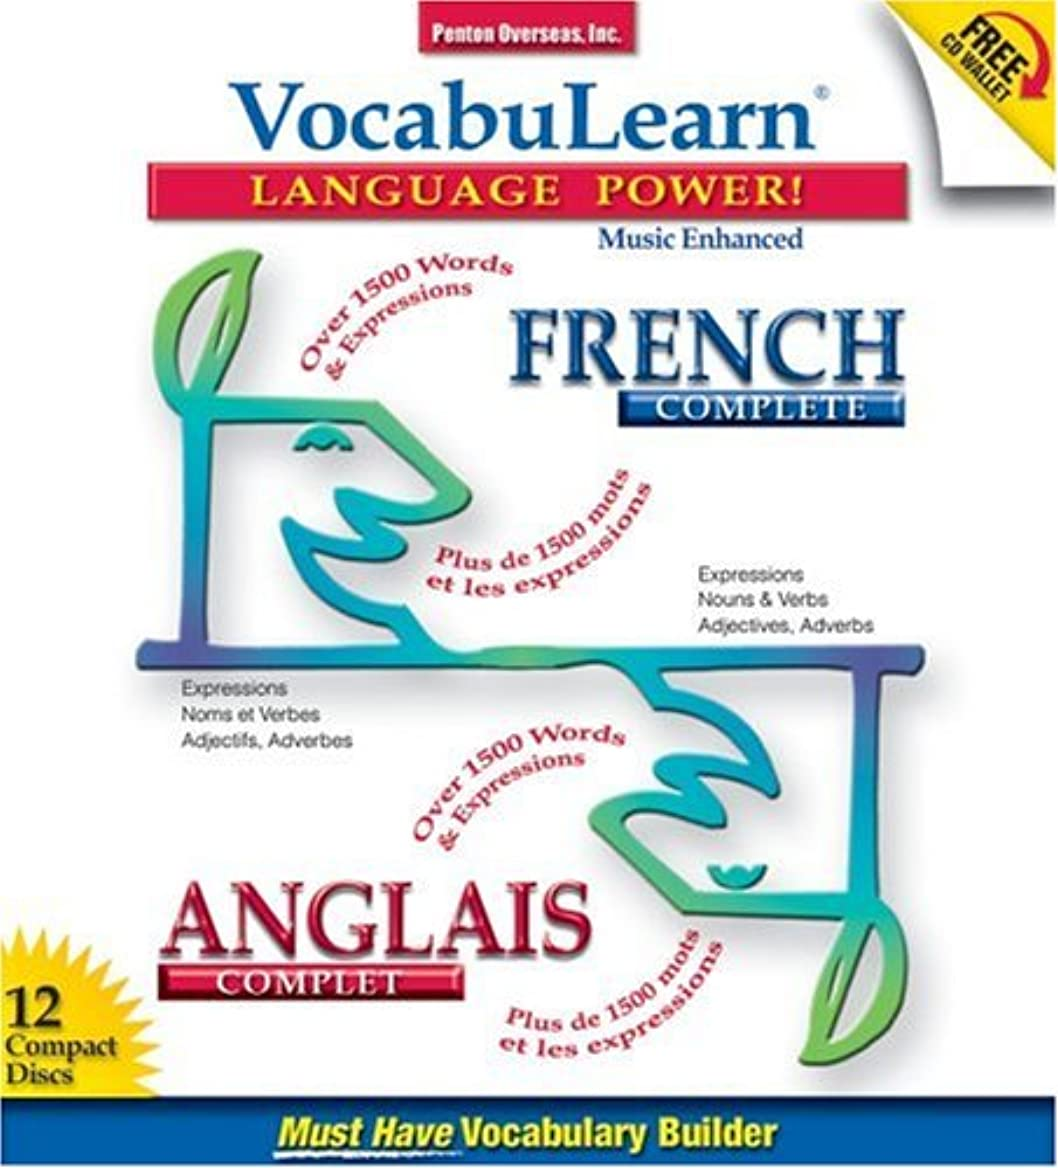 敬な普遍的な有効Vocabulearn French Complete